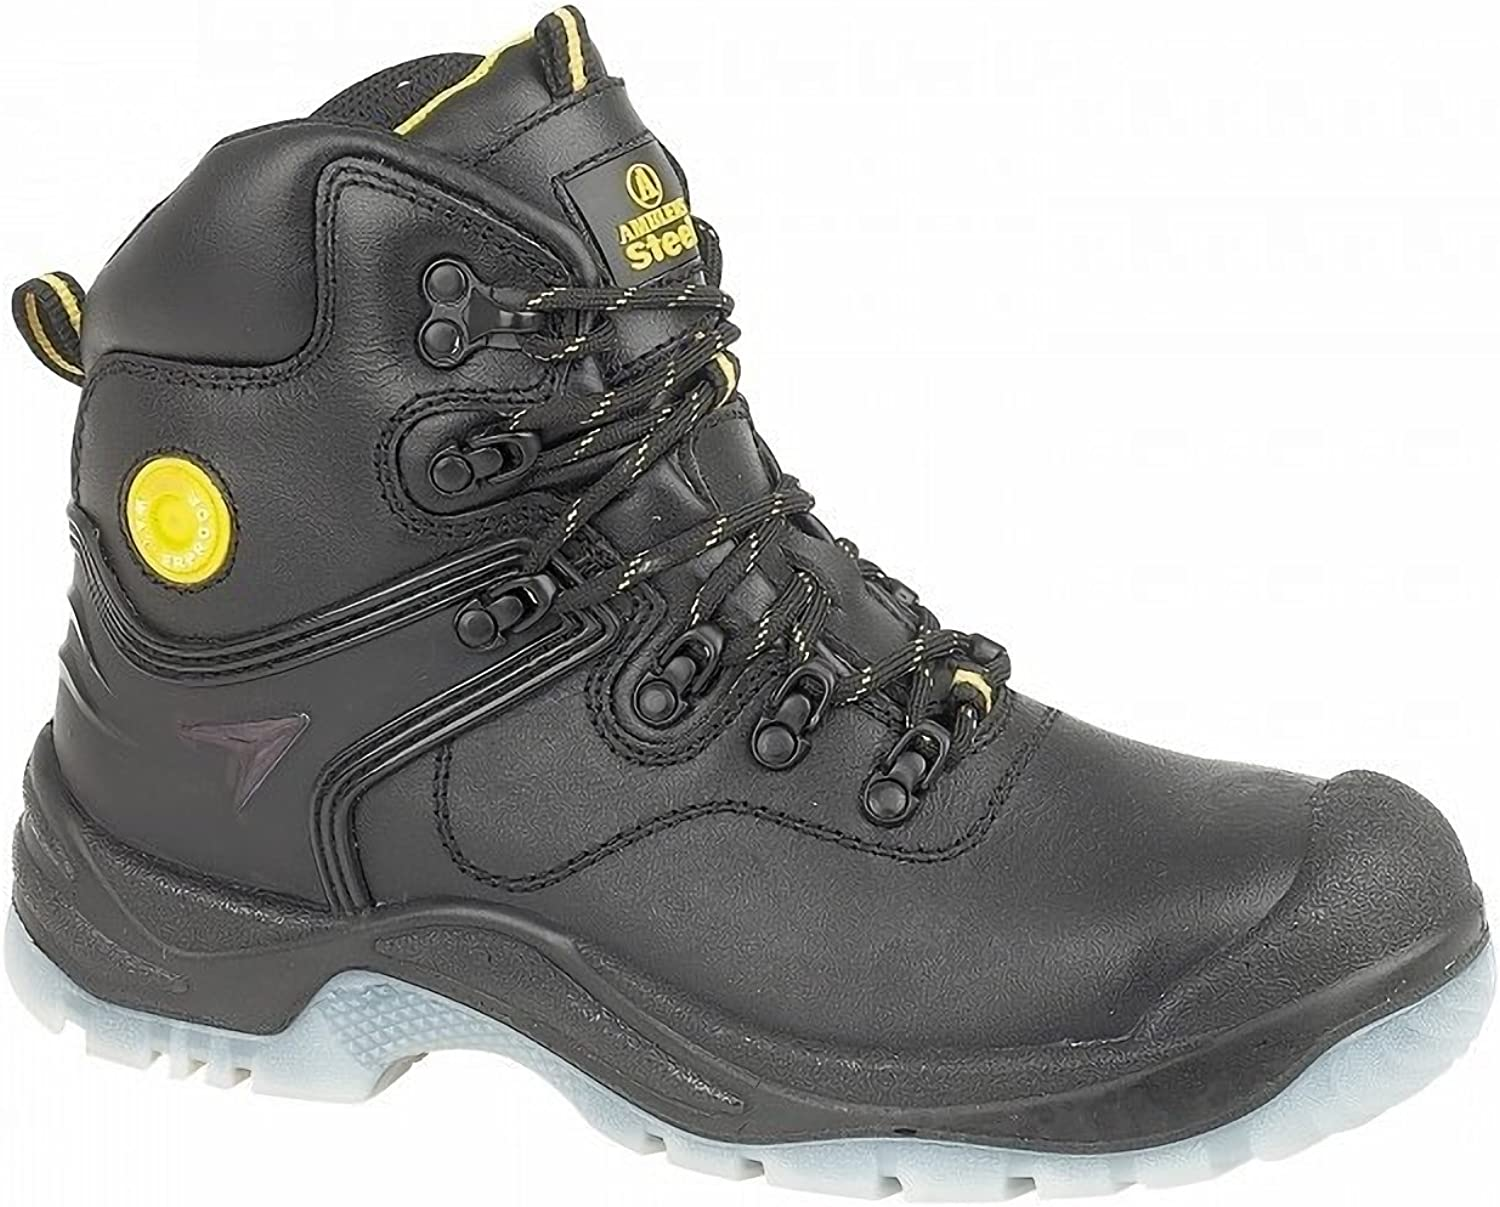 Amblers Steel FS198 Safety Boot   Womens Ladies Boots   Boots Safety